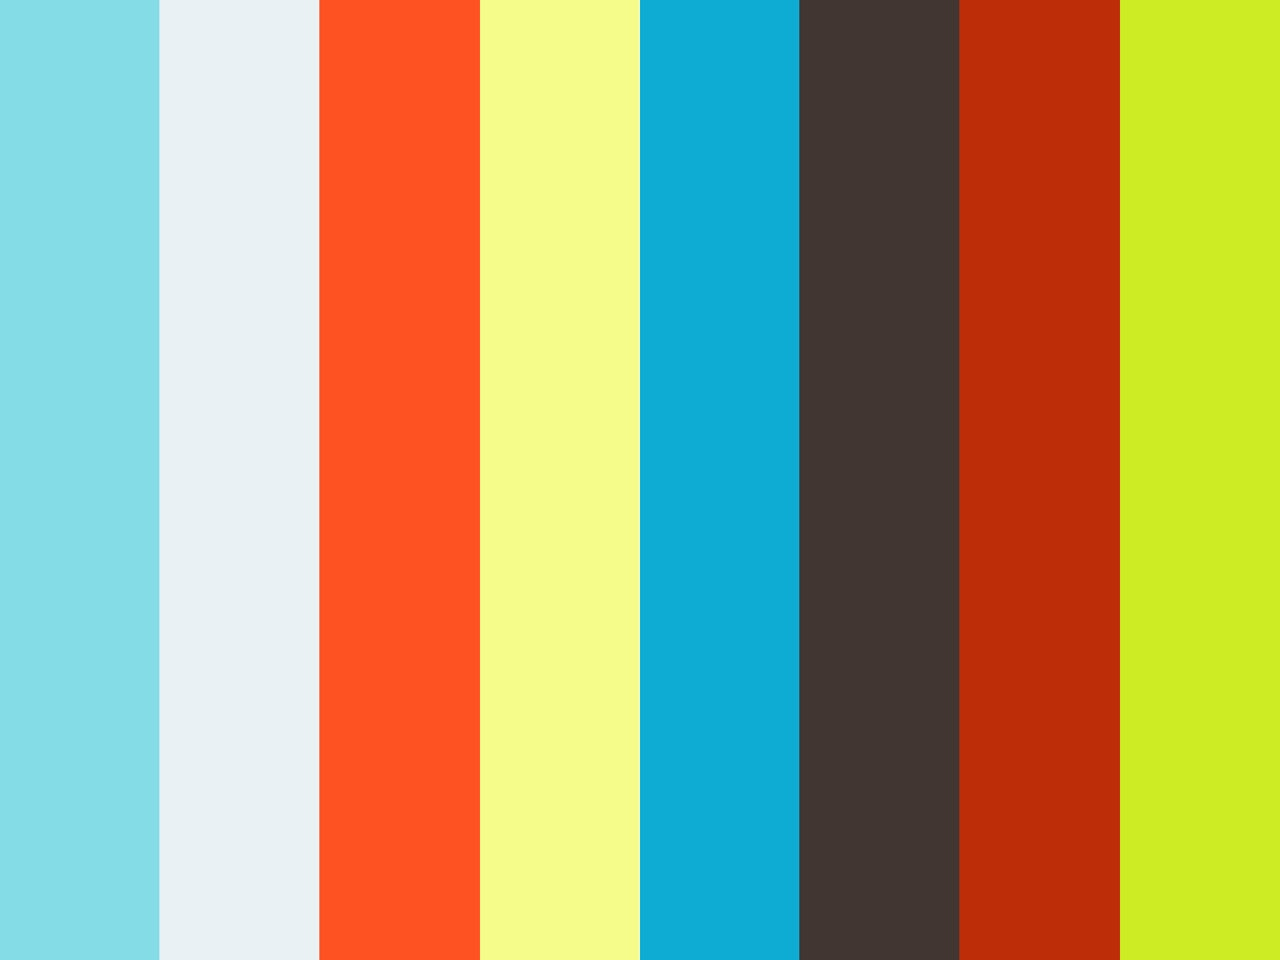 Is Extended Venous Thromboembolism Prophylaxis Indicated Following Colon Surgery for Inflammatory Bowel Disease? 2017